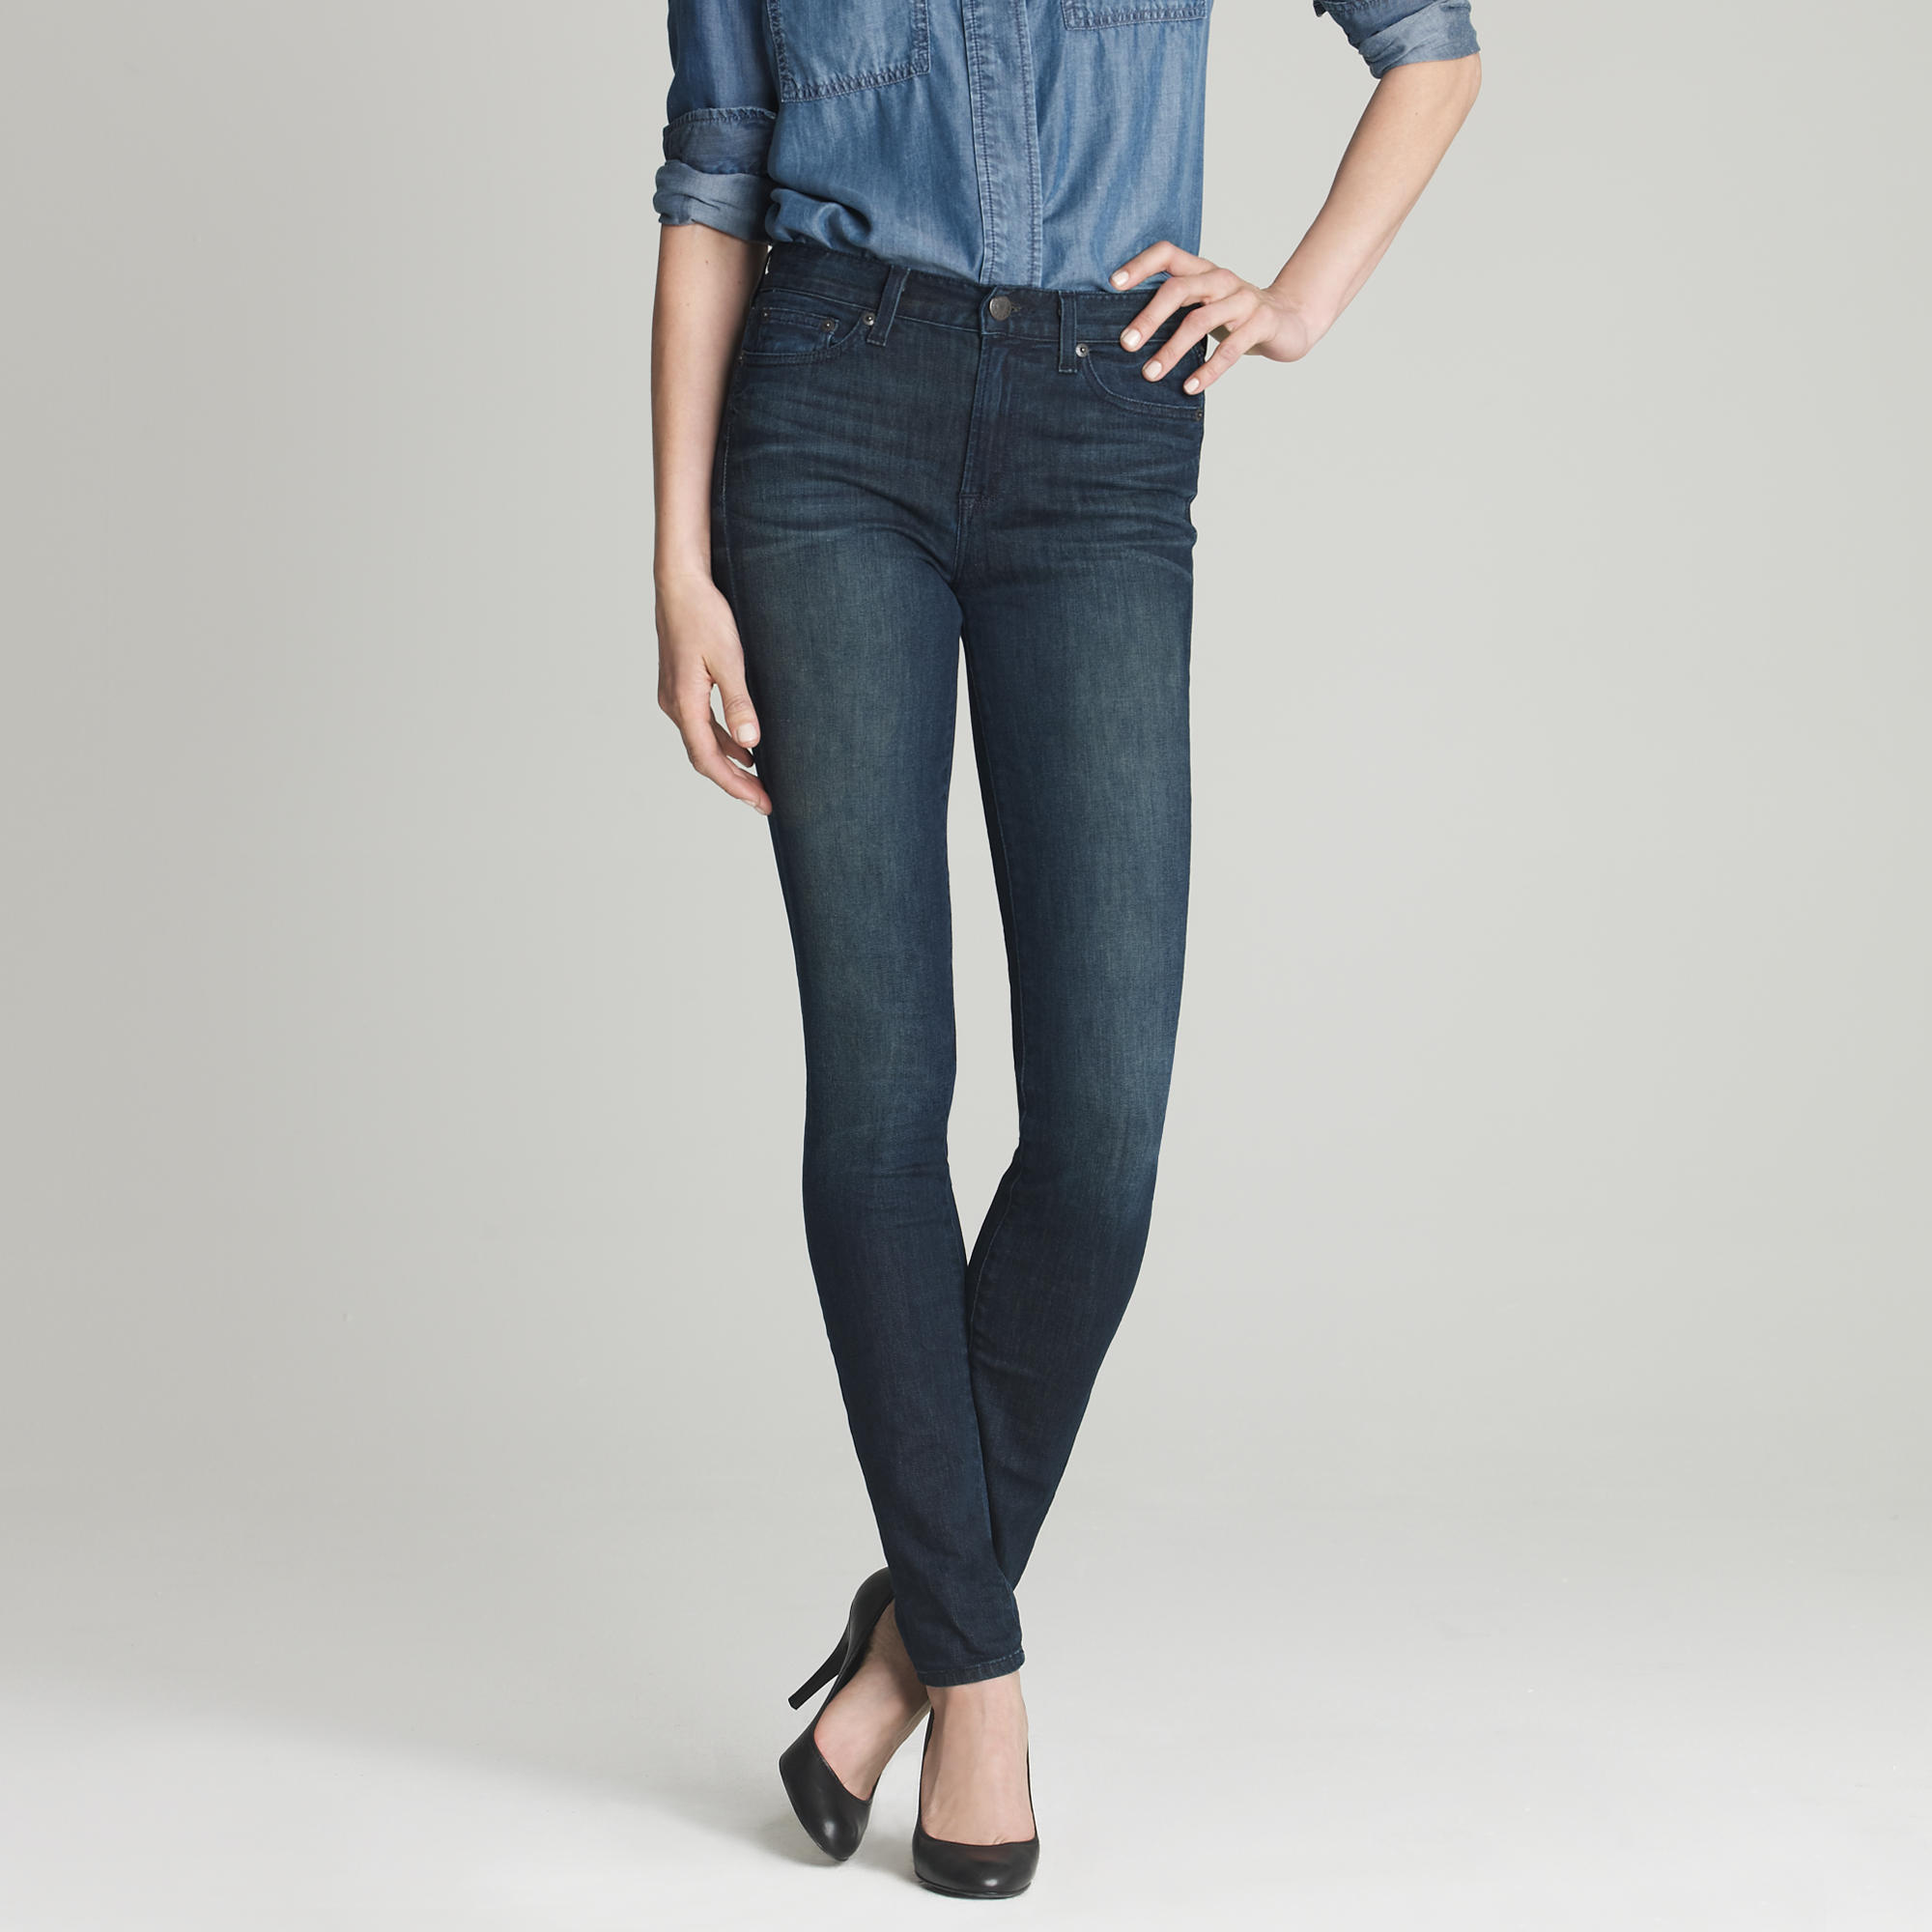 High-waisted skinny jean in night owl wash : | J.Crew